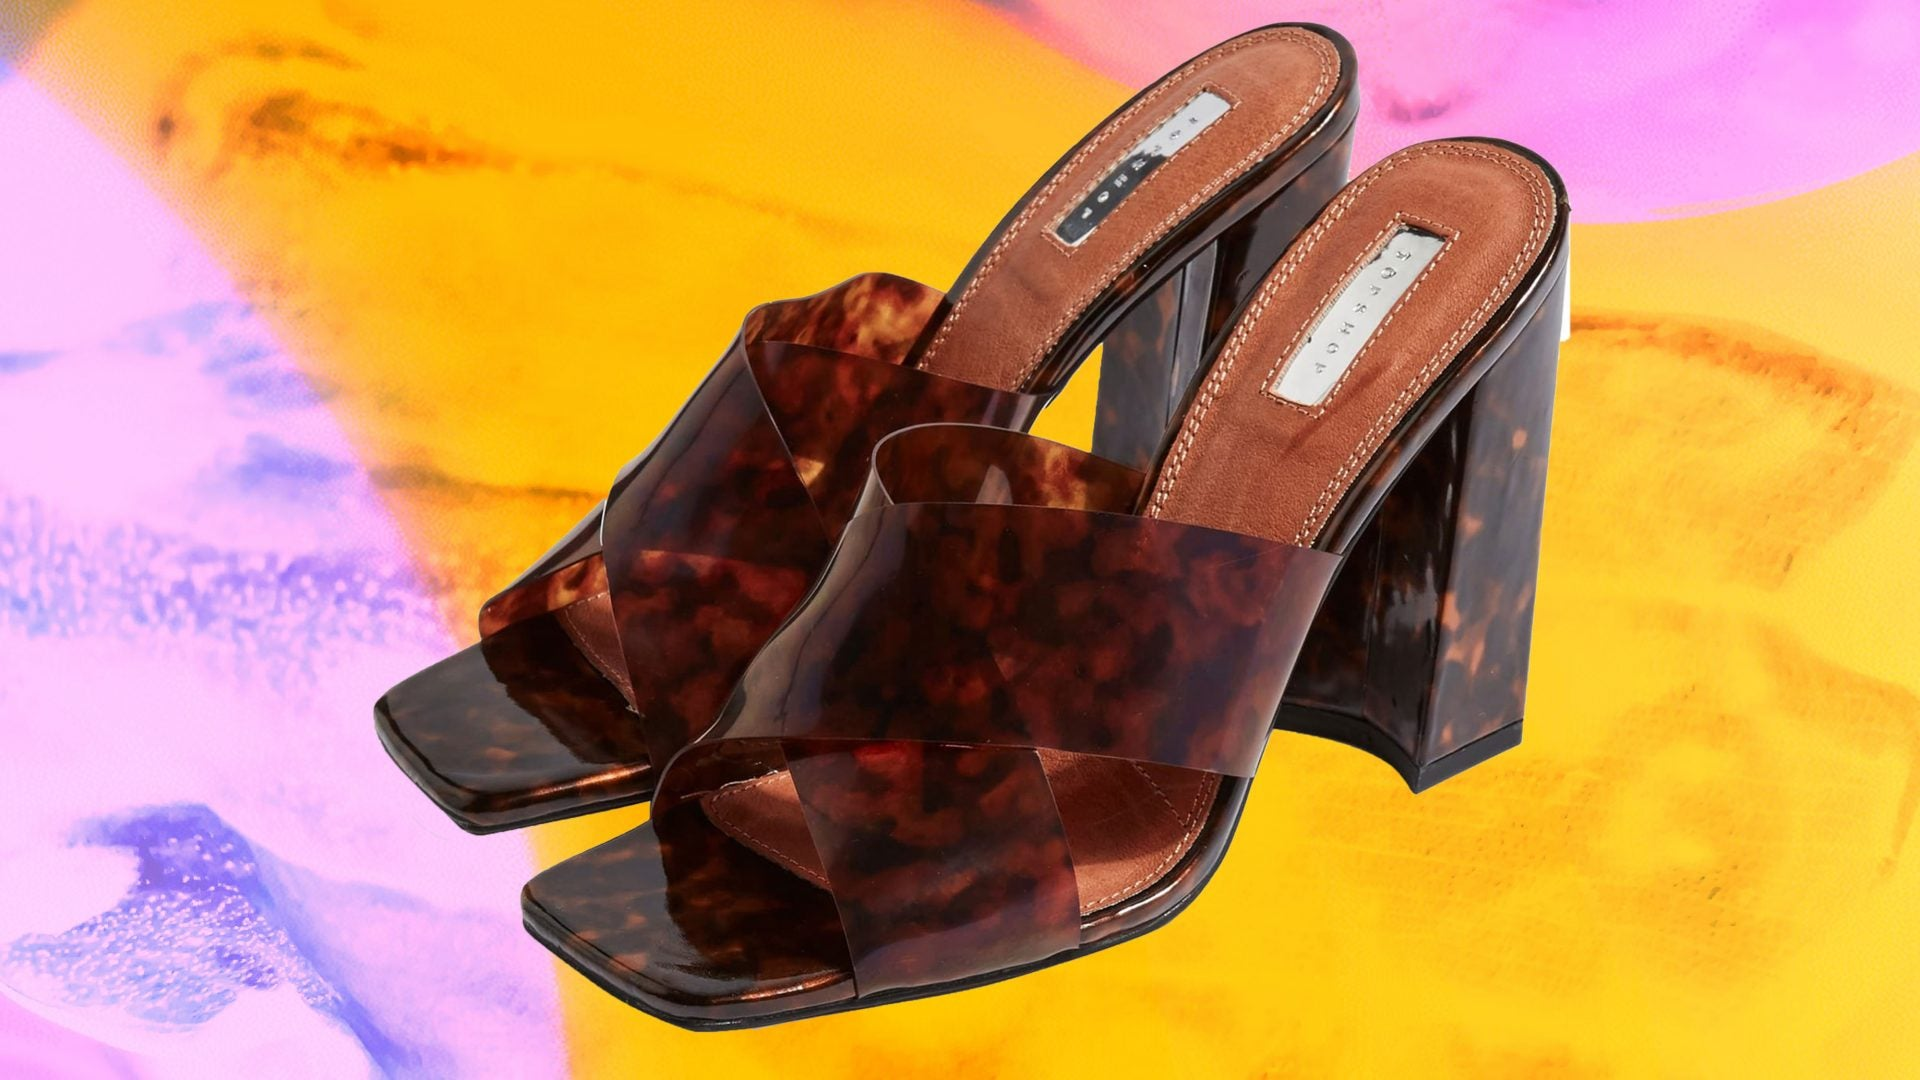 Your ESSENCE Festival Won't Be Complete Without These Statement Heels